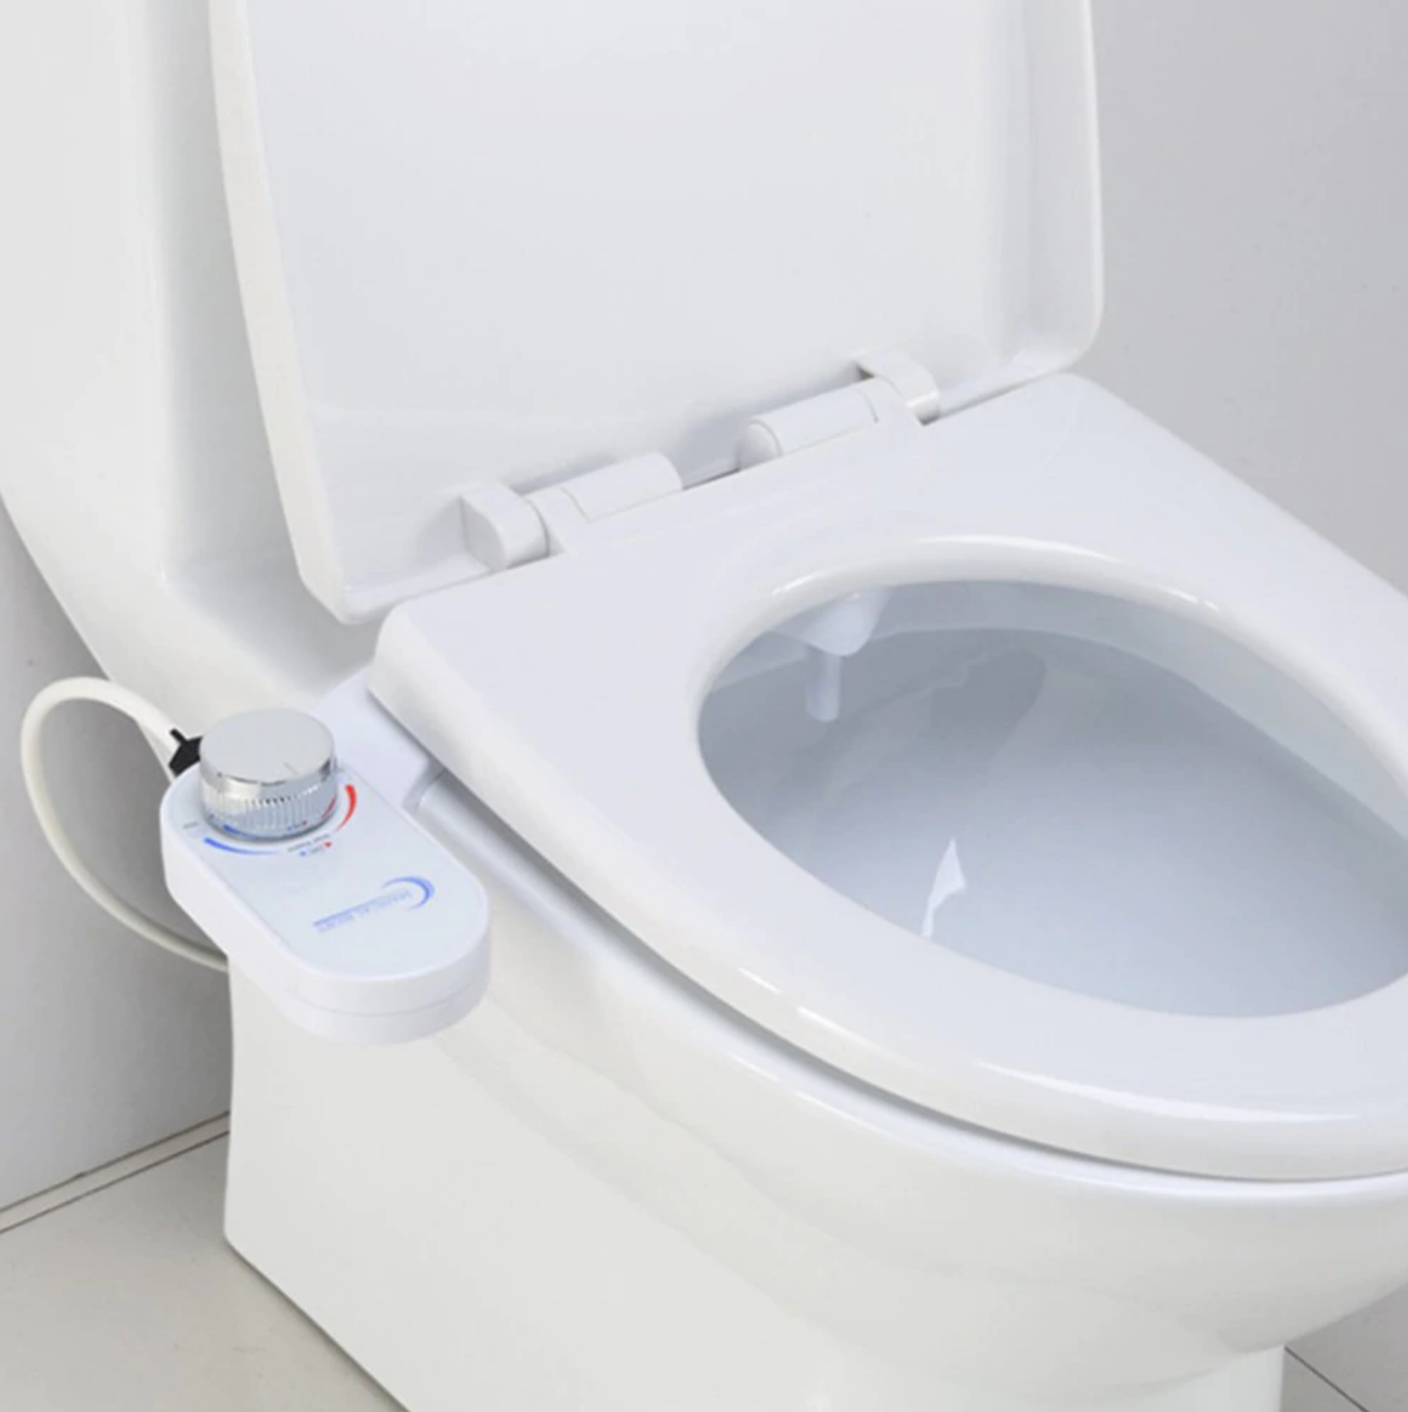 Use Less TP Toilet Bidet Attachment Dual Nozzle Self Sterilizing Non-Electric Easy Install